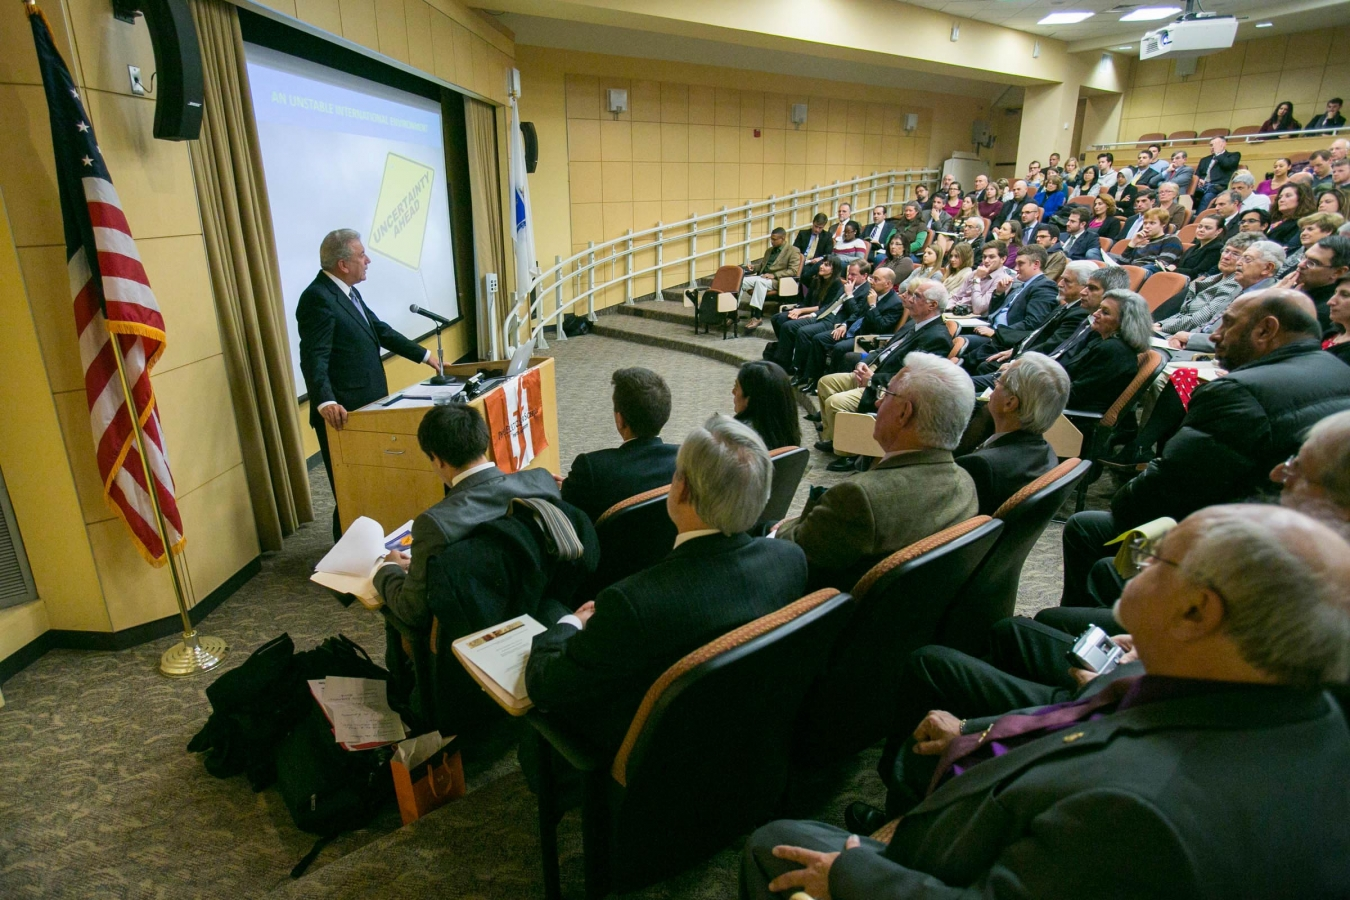 Defence Minister Dimitris Avramopoulos lectures at the Fletcher School of Law and Diplomacy of the Tufts University (Hellenic Republic/Minister of Defense)